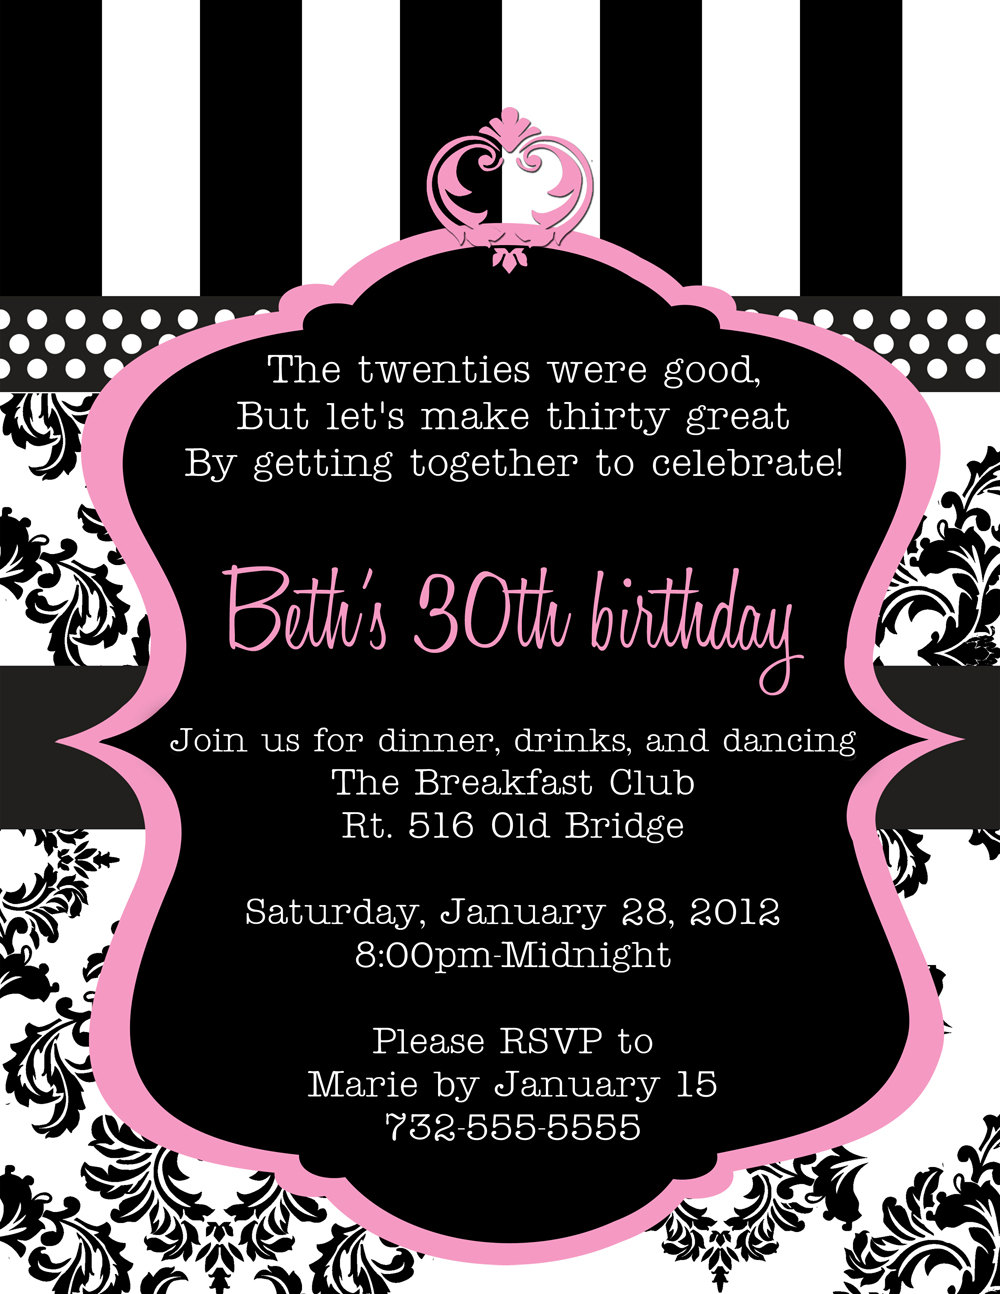 30th birthday invitation designs ; 30th-birthday-invitations-to-make